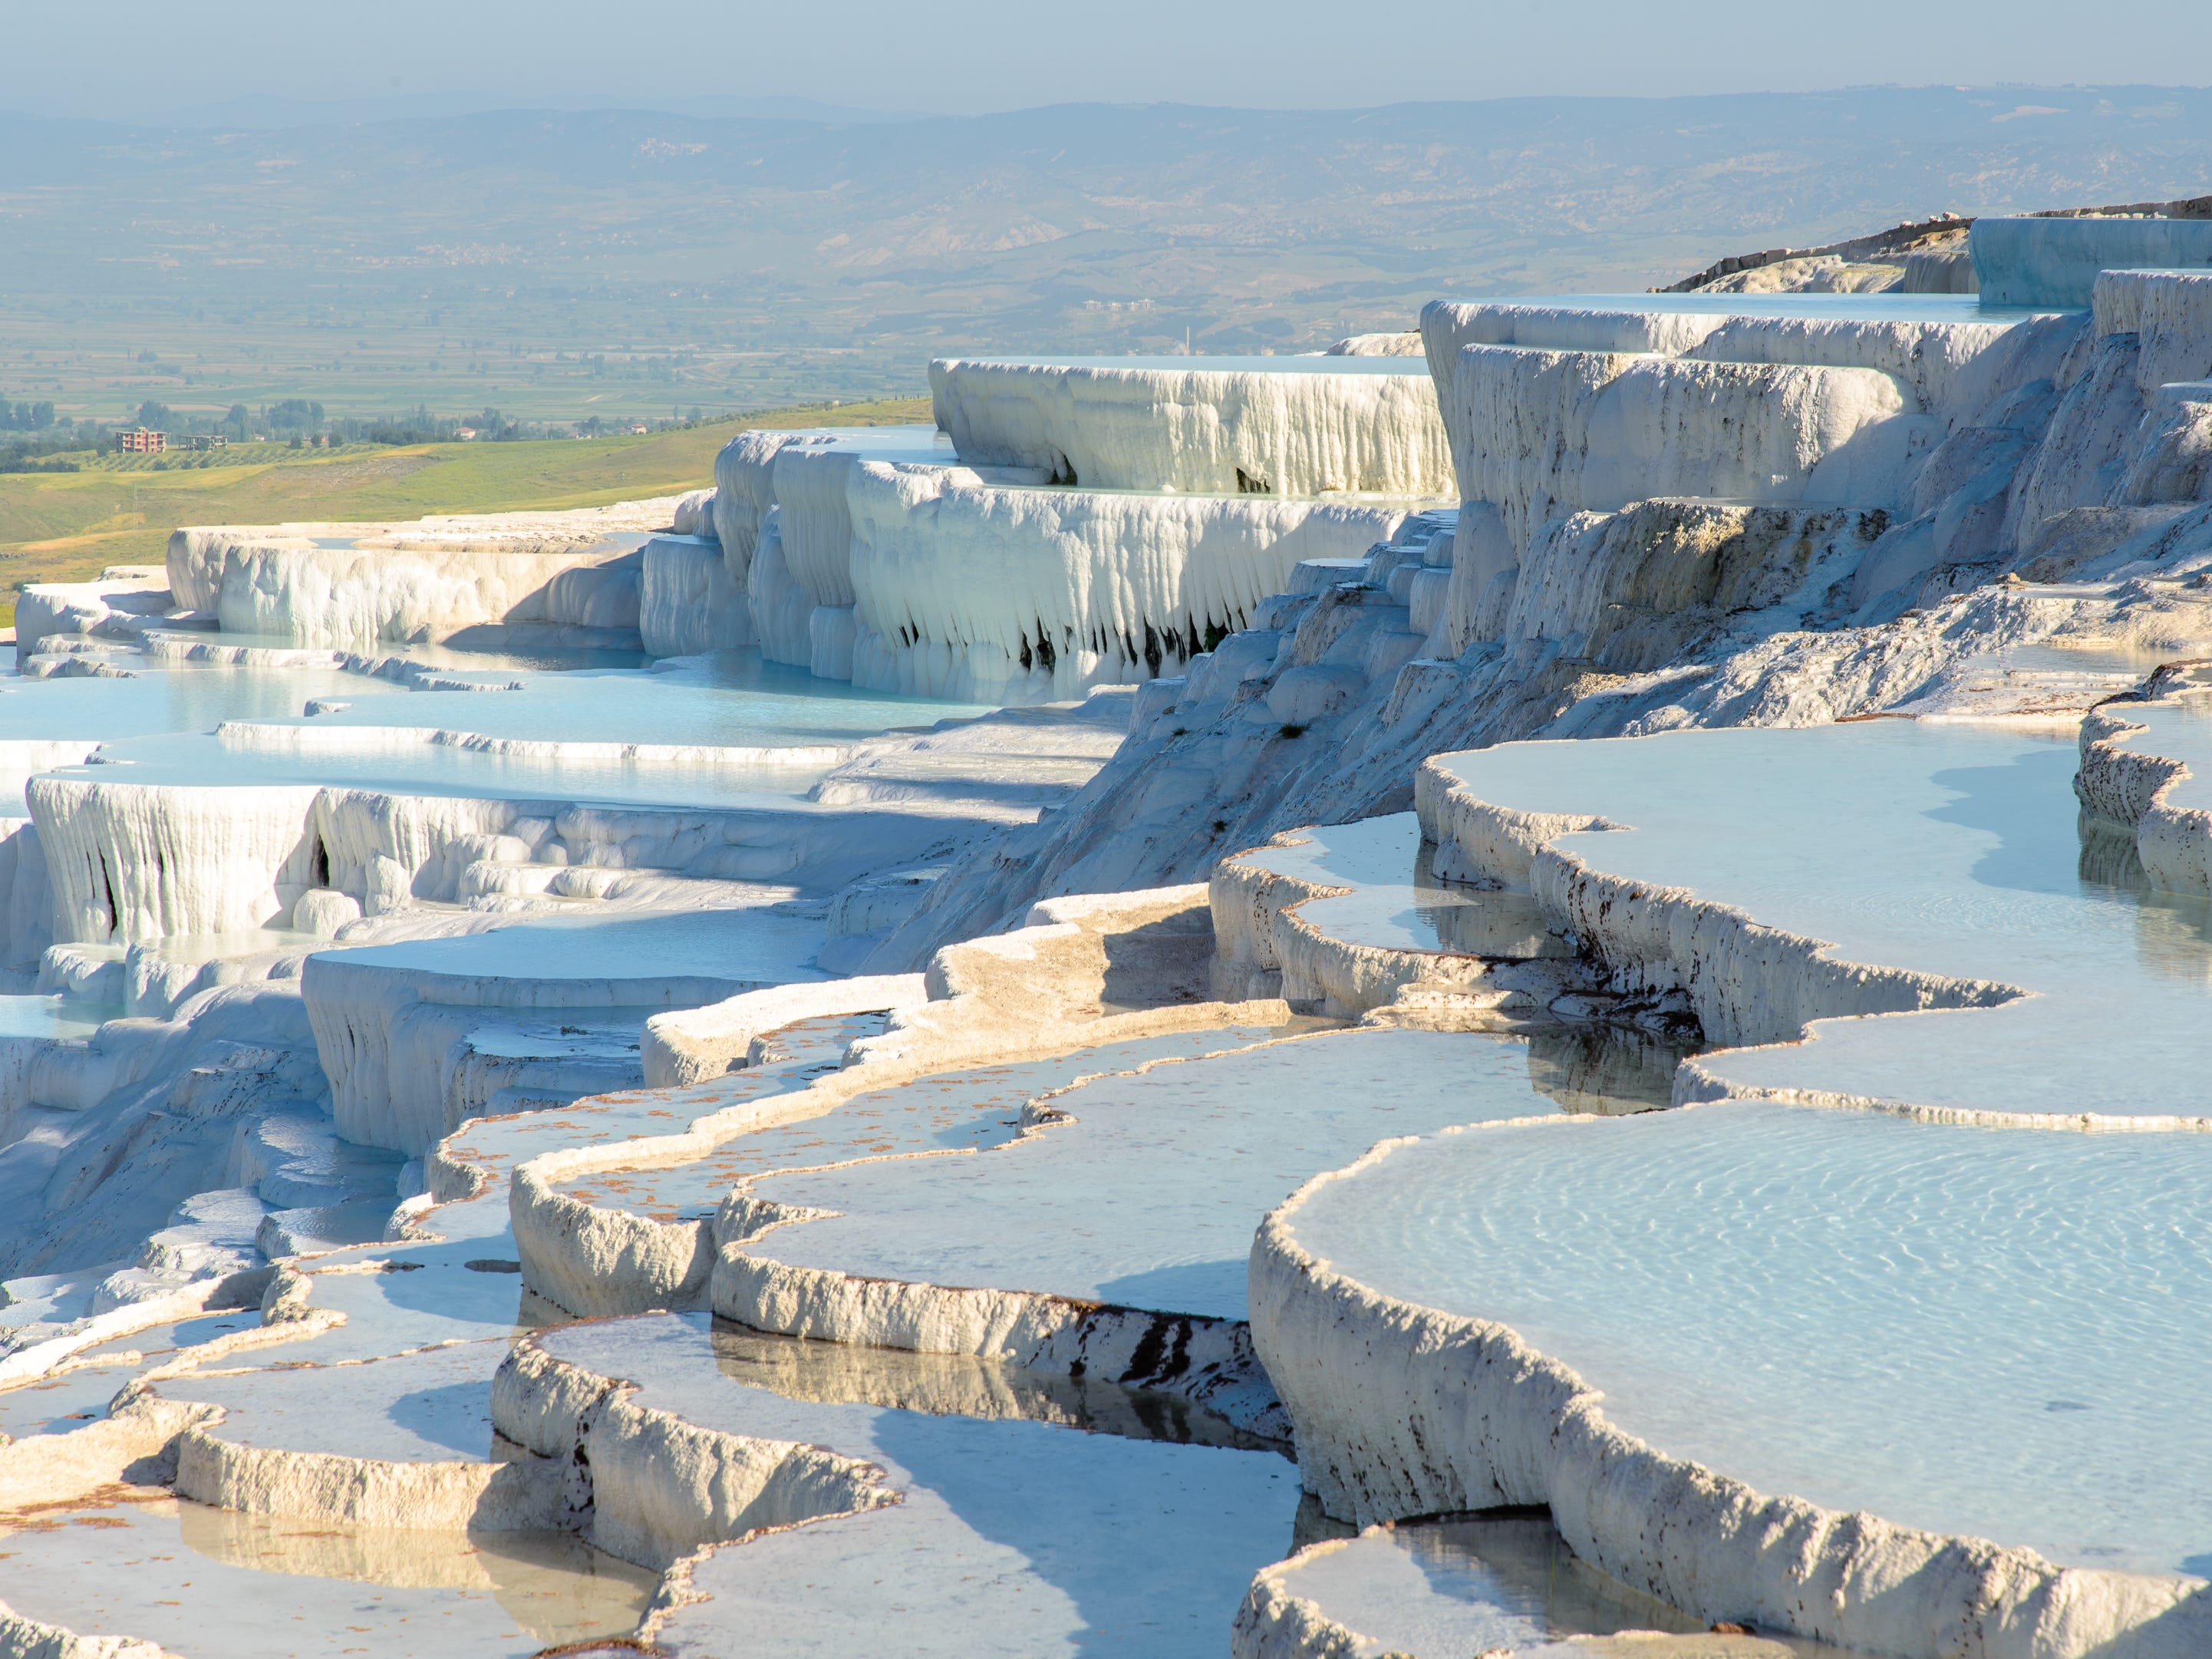 """Slide 14 of 51: Known as """"cotton castle"""" in Turkish, the bleached white, travertine terraces hold warm water pooled from natural hot springs. The terraces were created over time by limestone mineral deposits from geothermal activity."""